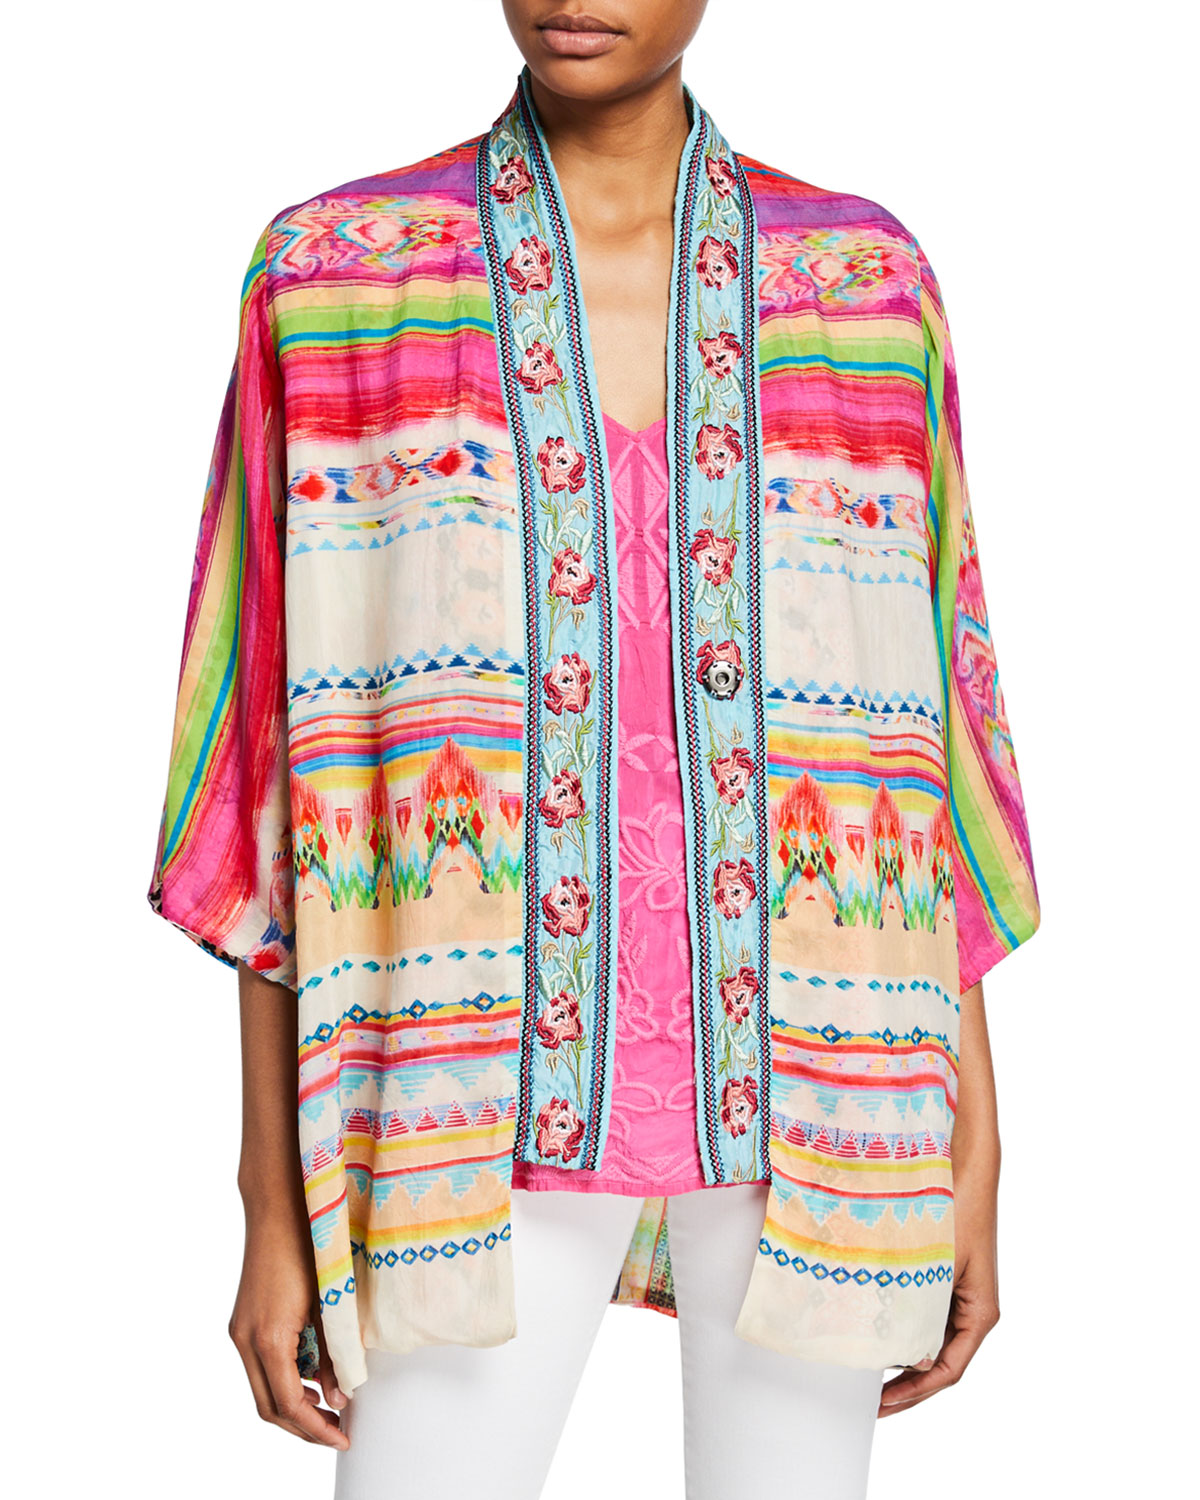 Johnny Was Tops MACI REVERSIBLE GEORGETTE KIMONO WITH EMBROIDERED TRIM